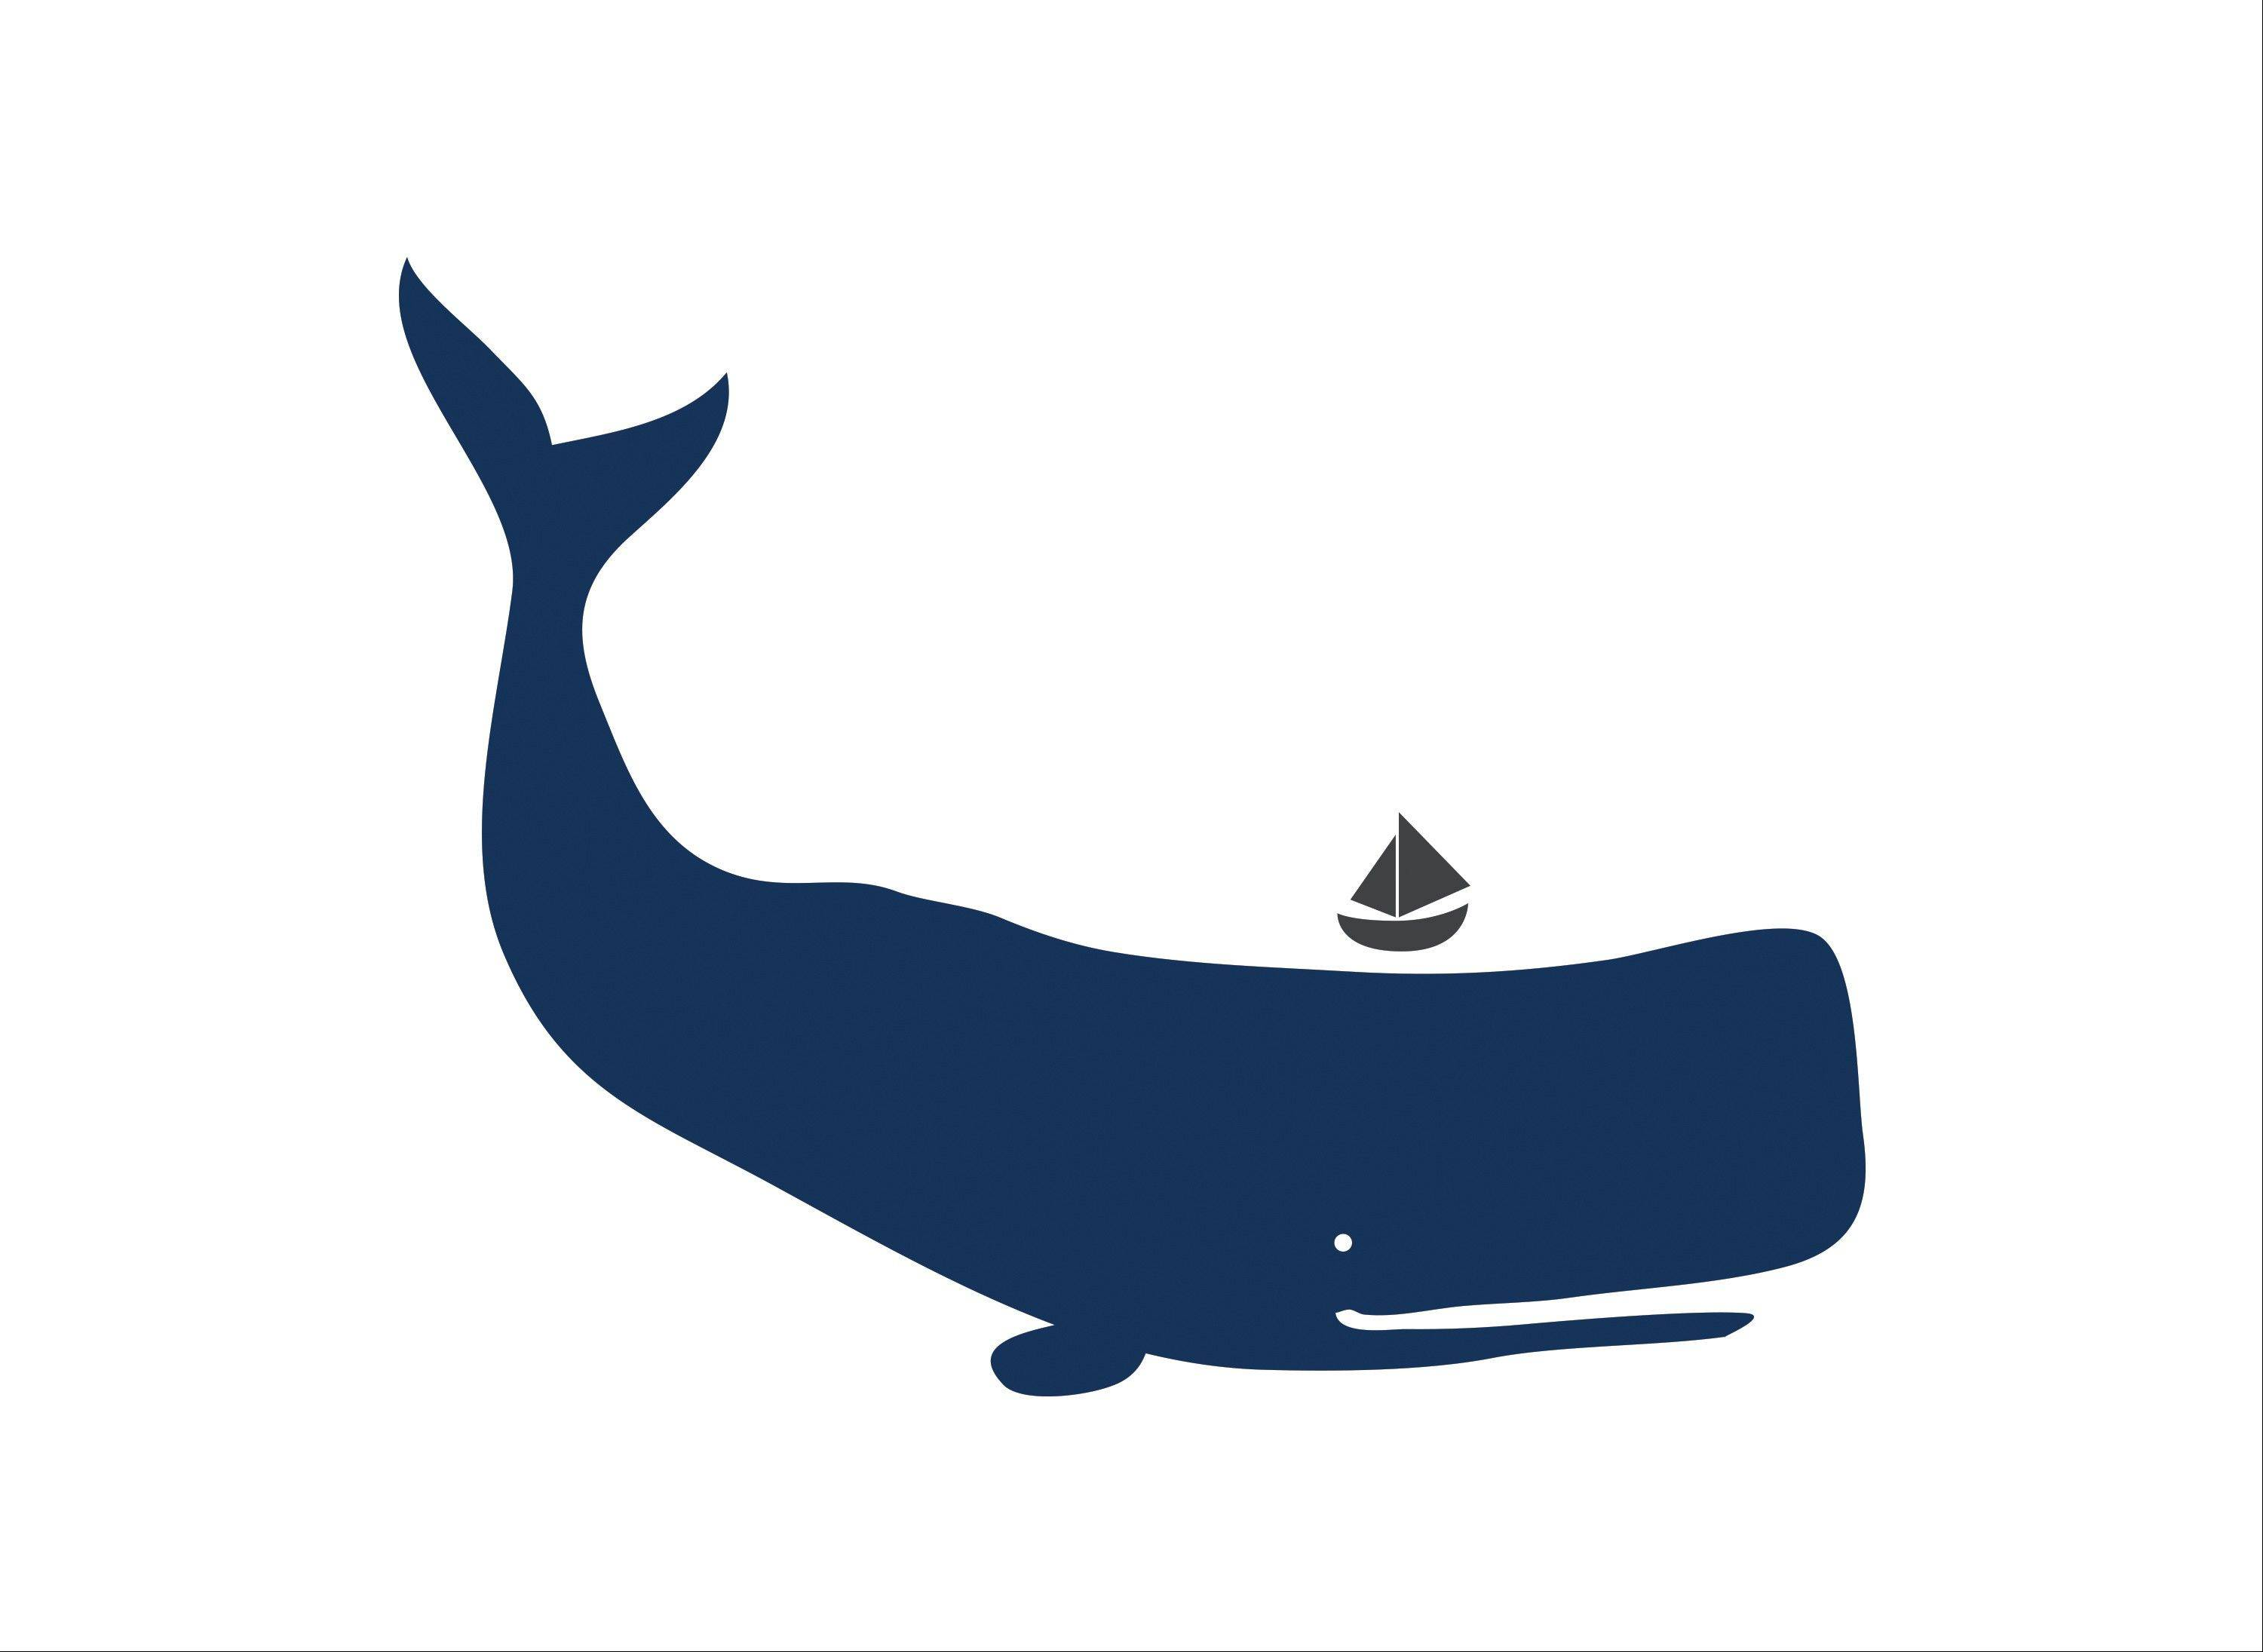 A whale wall decal from the Toronto-based LittleLion Studio.